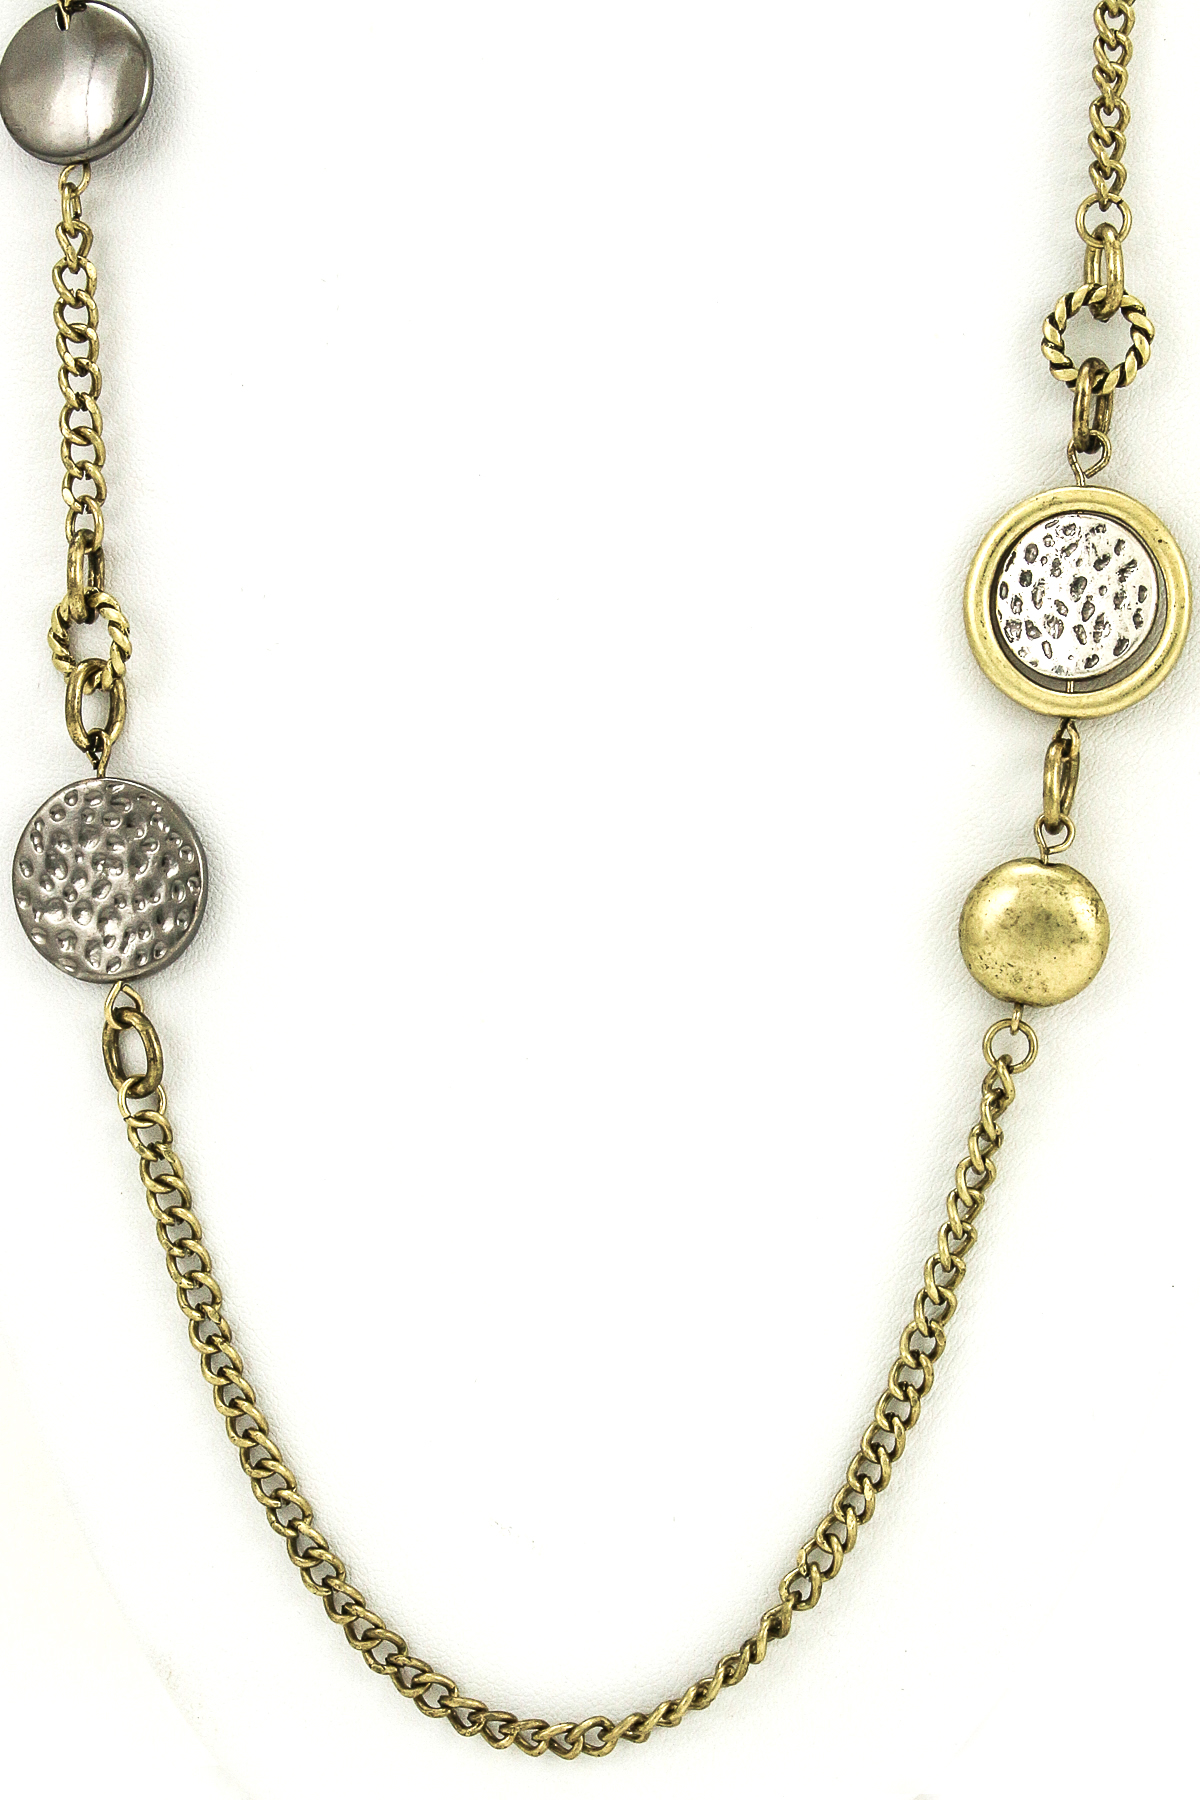 Hammered Metal Charms Long Necklace - Necklaces